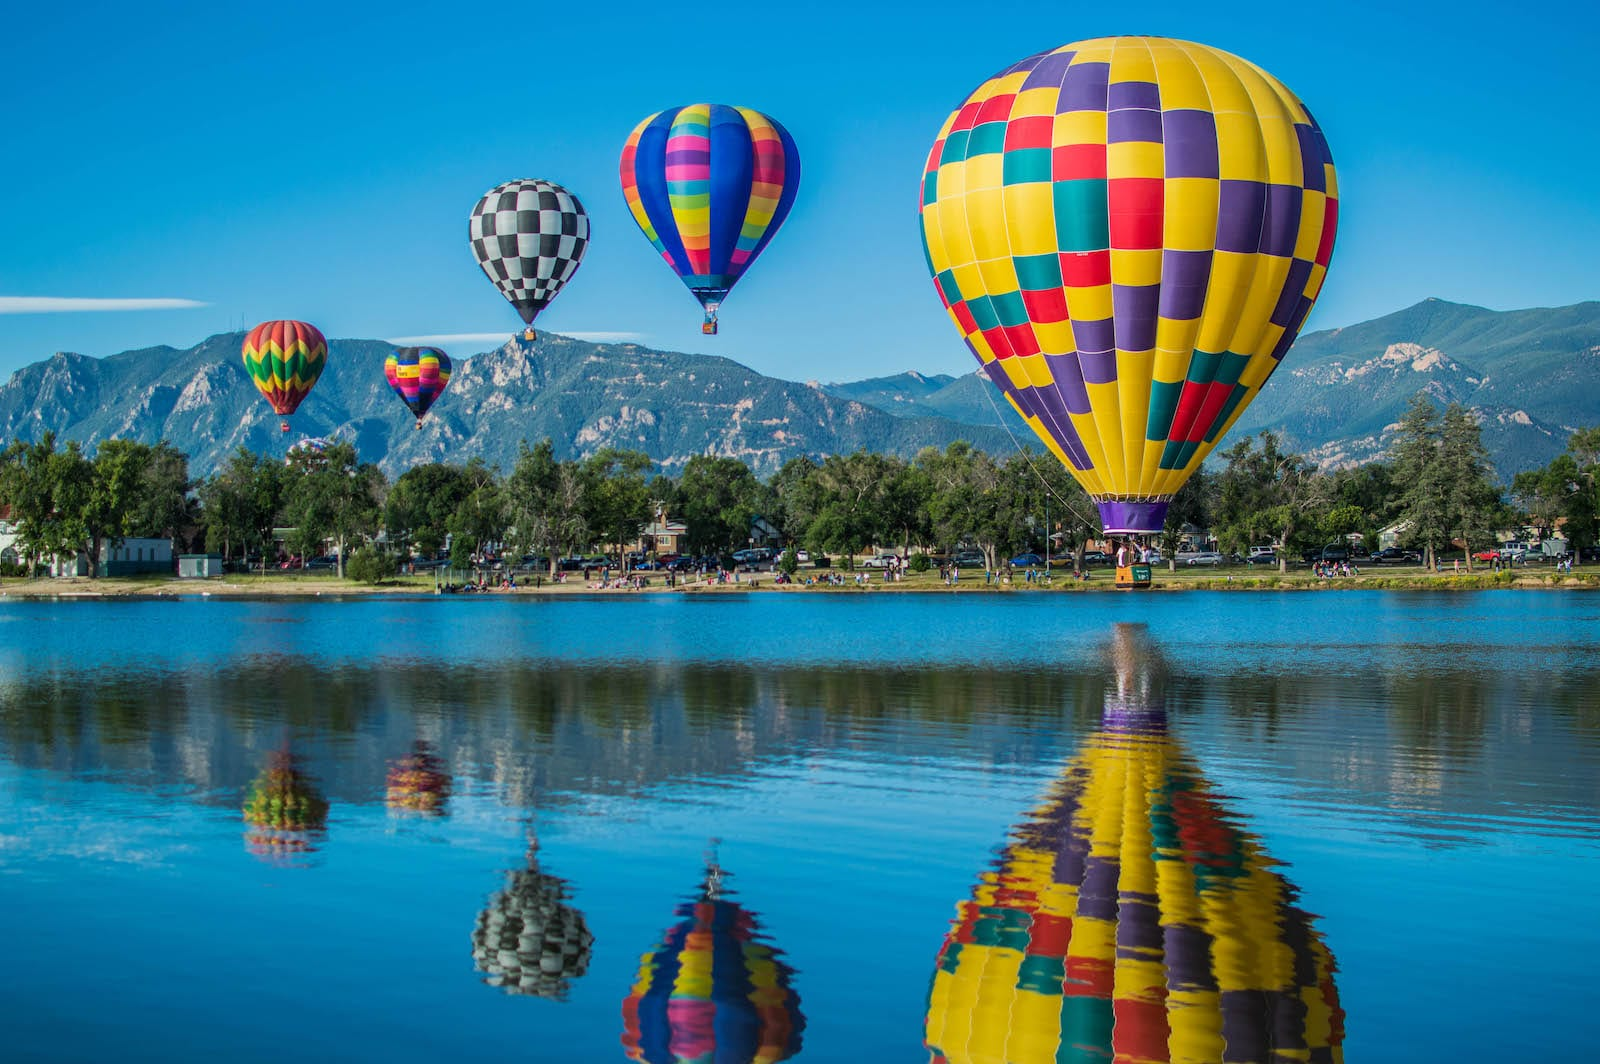 Balloon Classic in Memorial Park, Colorado Springs.